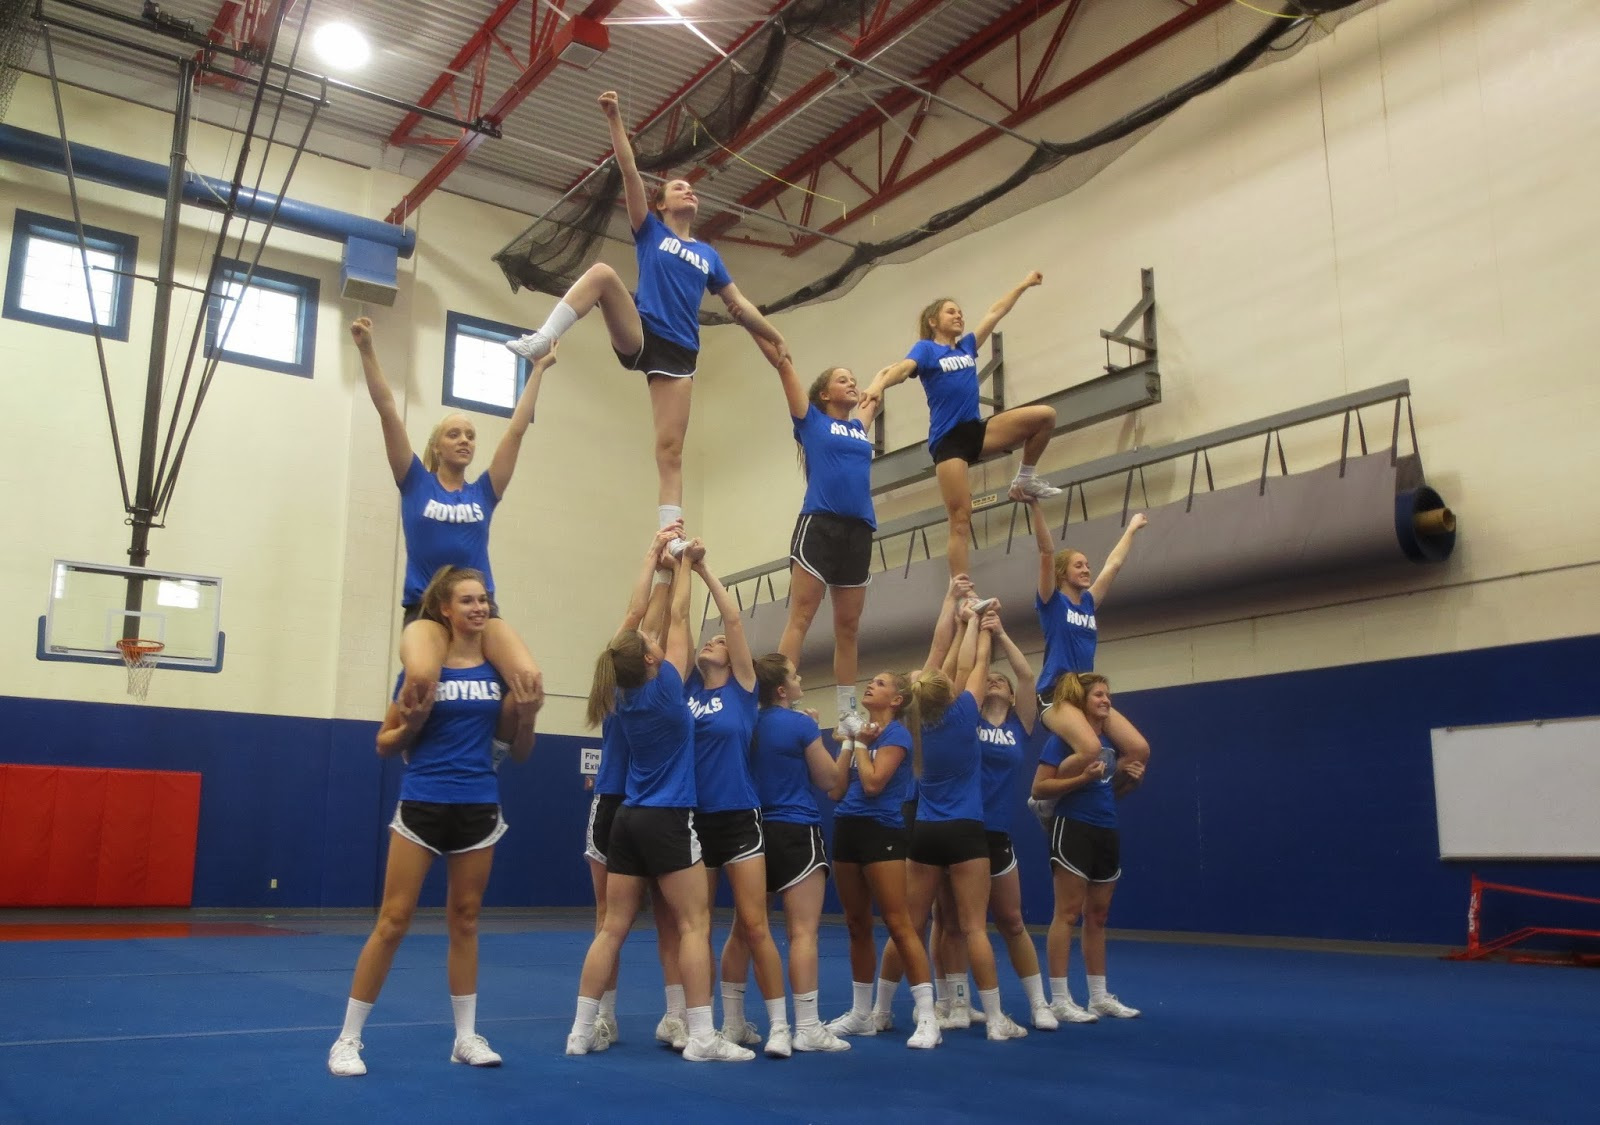 is cheerleading a sport essay Thesis statement cheerleading should be considered a sport because it is more than just the cheering and chanting, it takes athleticism, endurance, and strength to compete as a cheerleader they don't know how long or how often they practice.